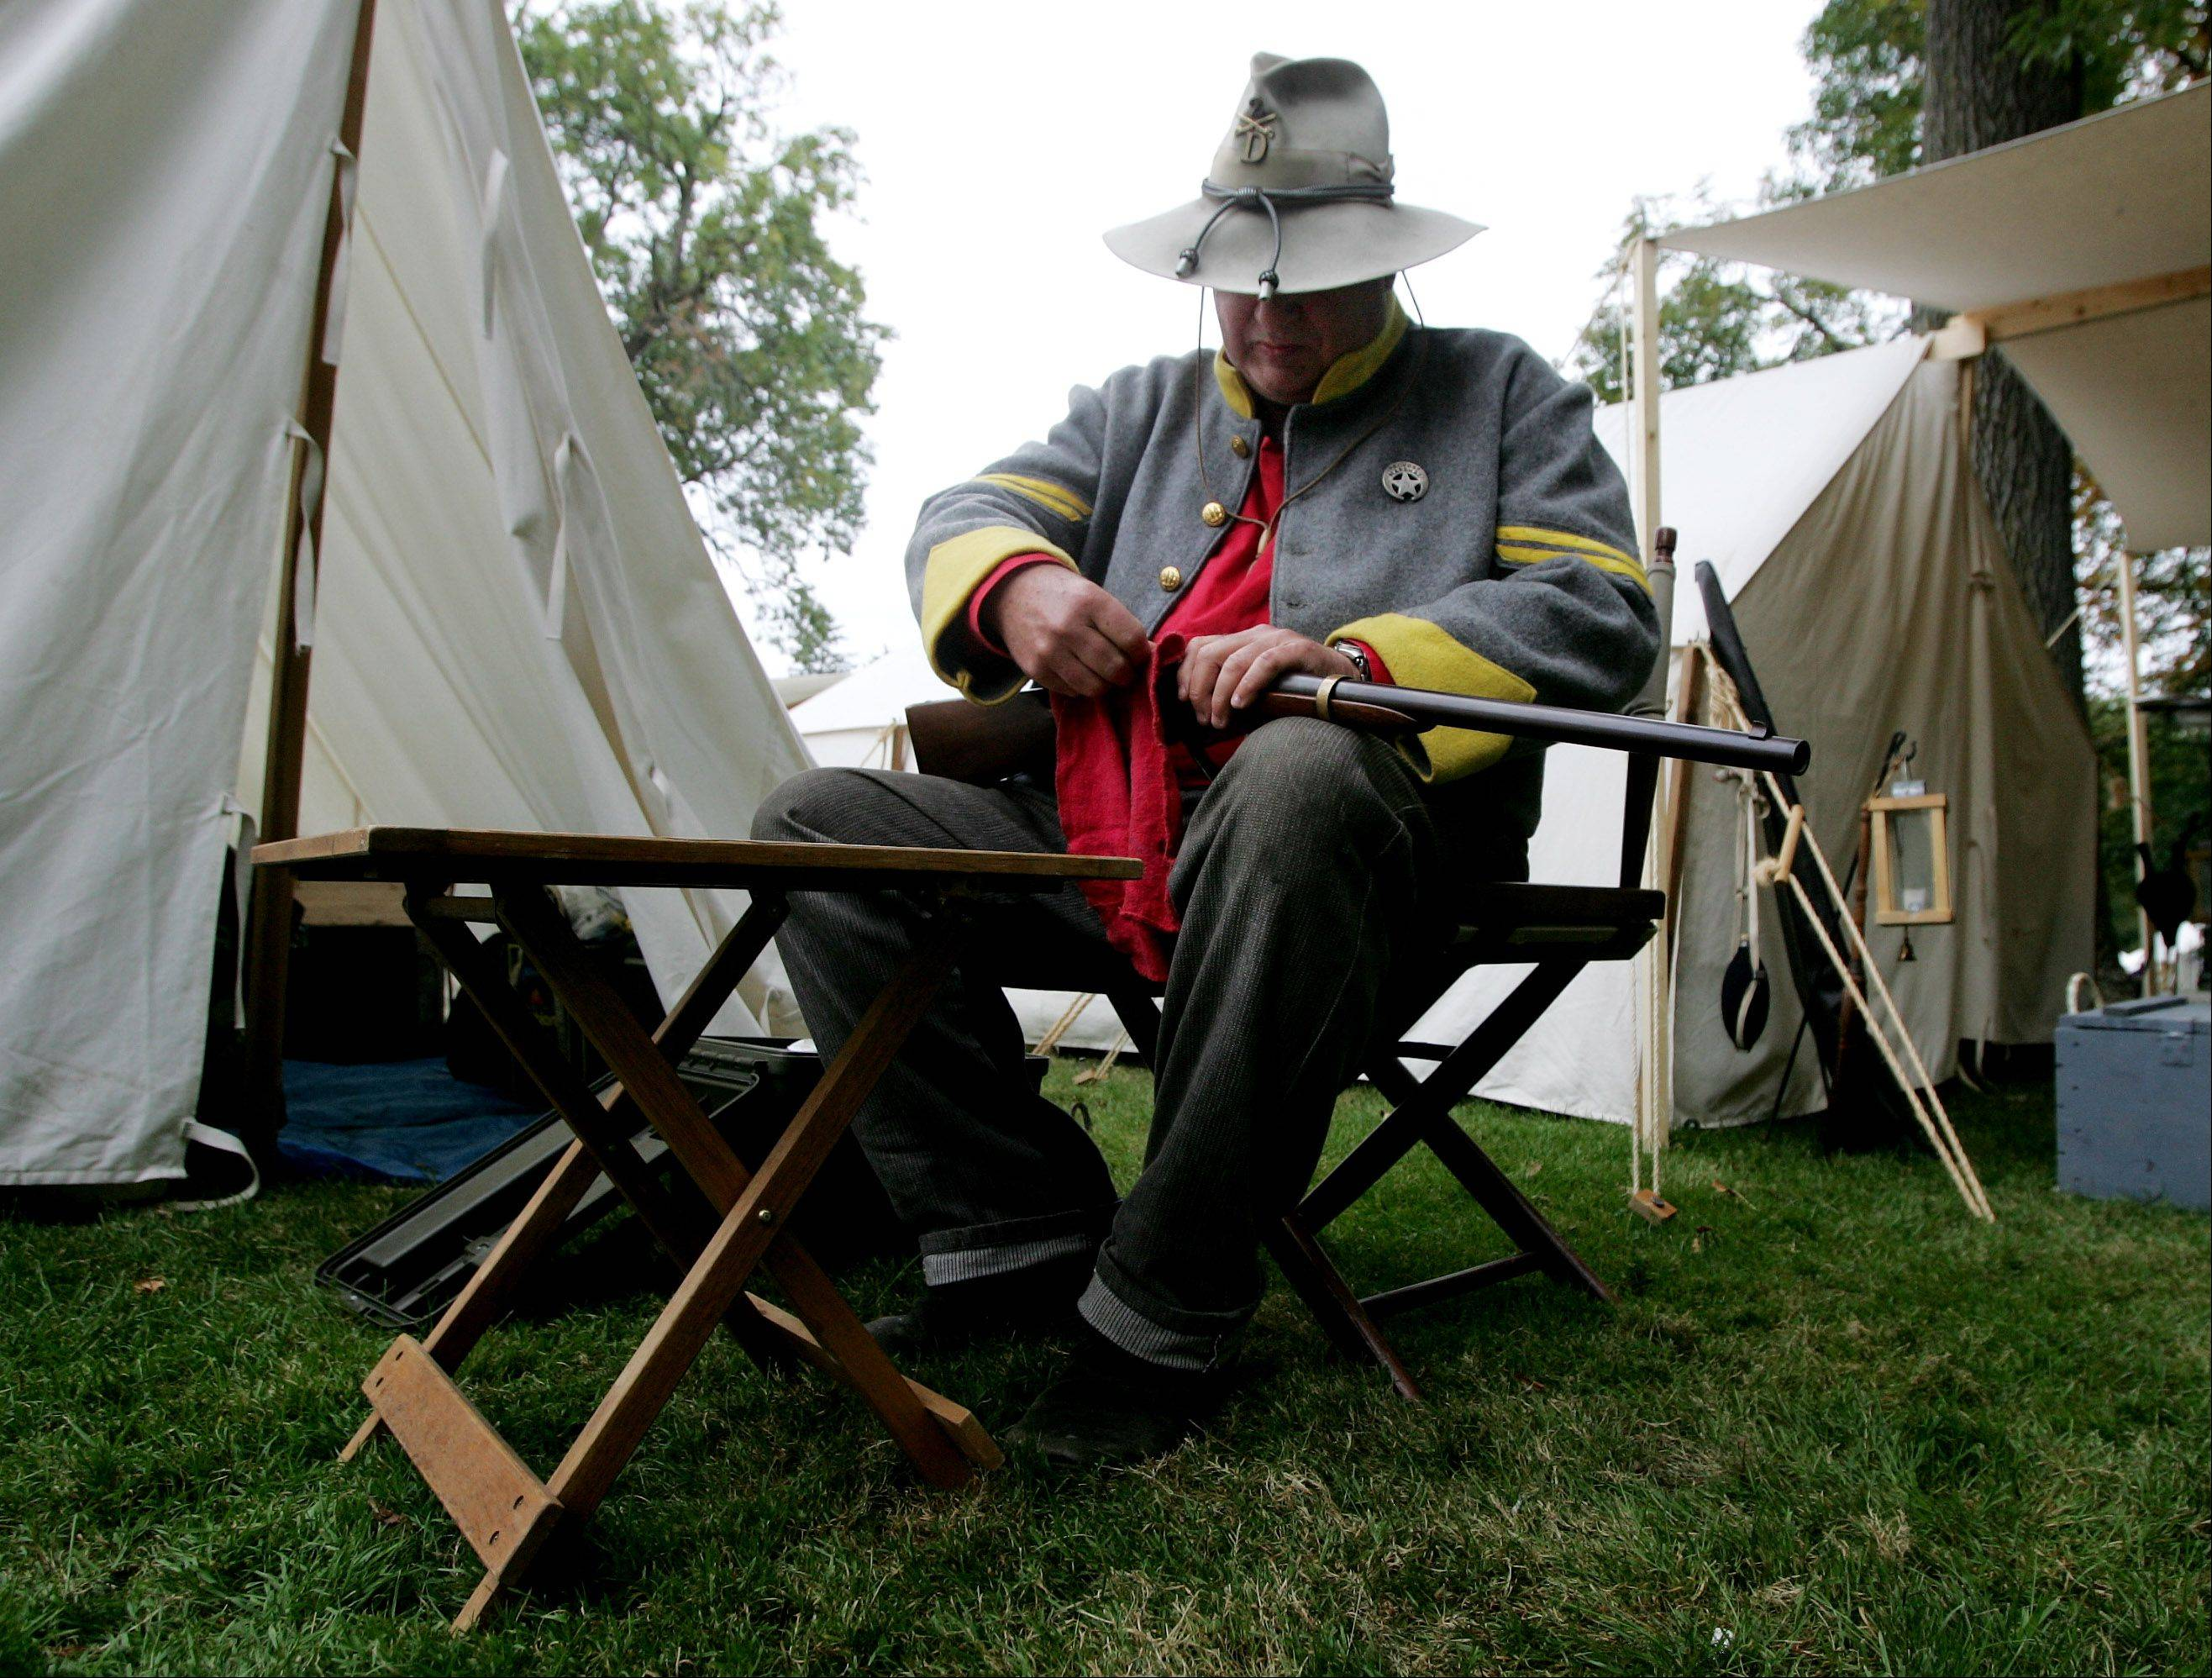 John Downey of Sussex, Wisconsin cleans a Sharp�s rifle during last year�s Annual Lake Villa Civil War Days Sunday at the Lehmann Mansion. Downey was an infantryman with the Confederate 2nd Kentucky Cavalry.